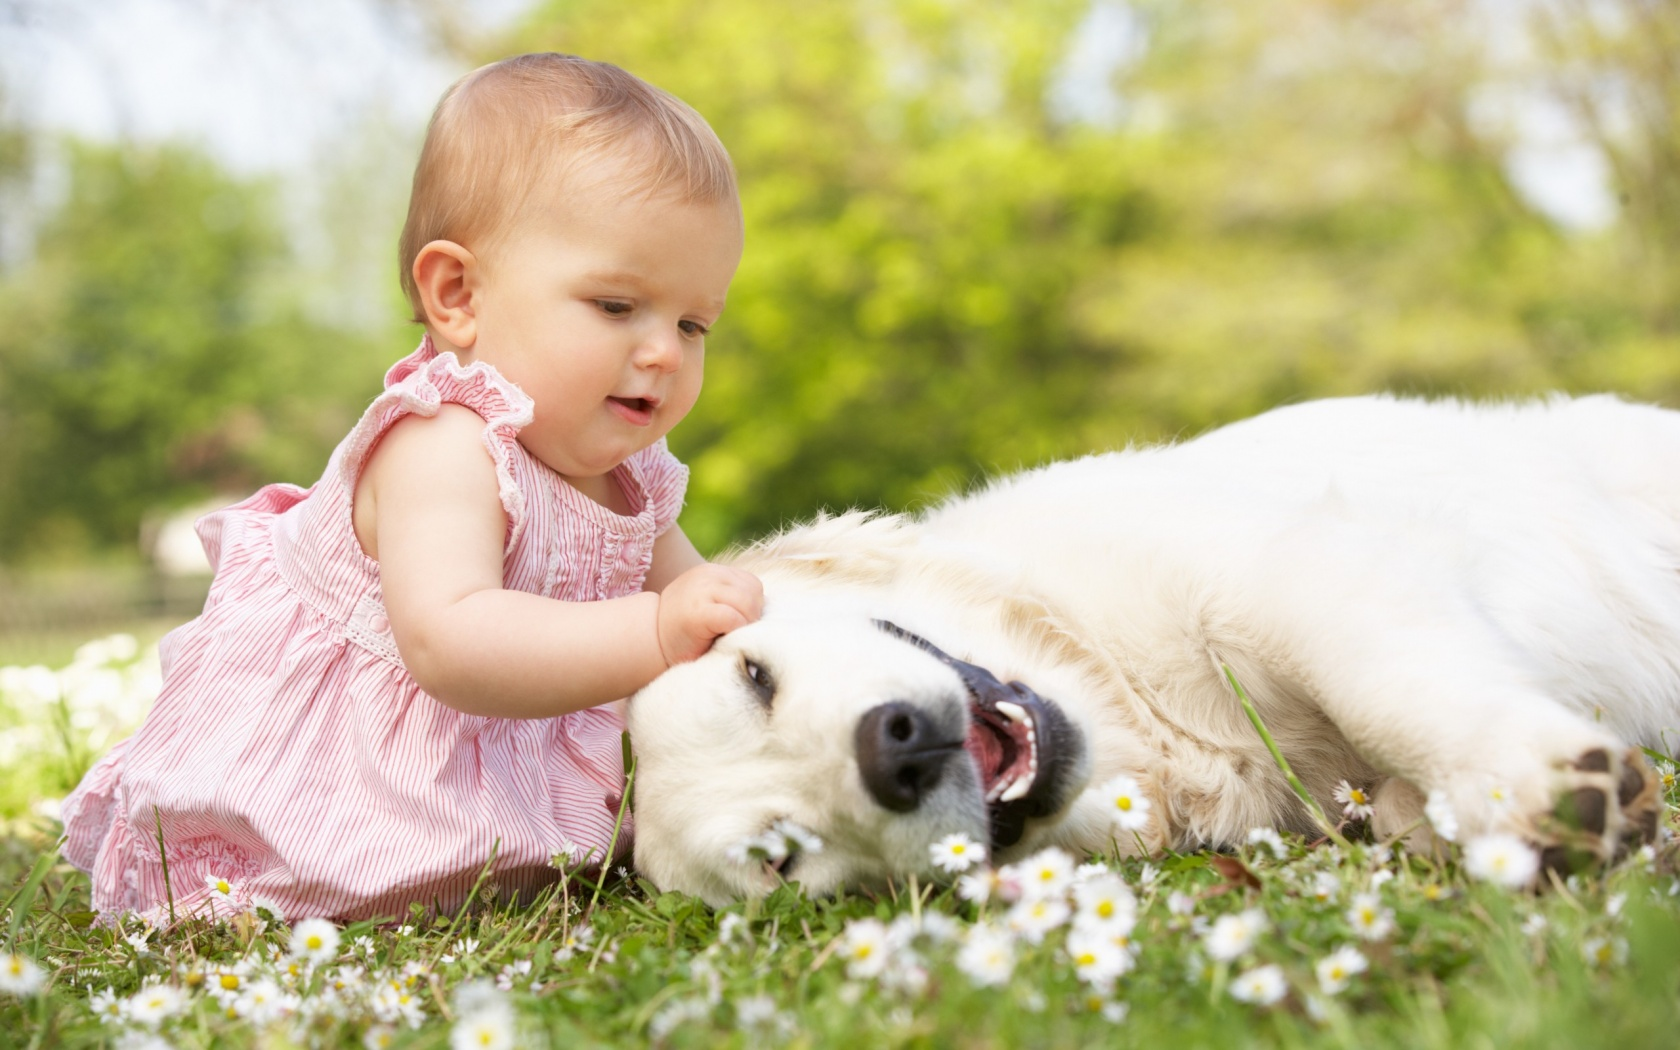 Cute-Girl-Baby-Playing-with-Dog